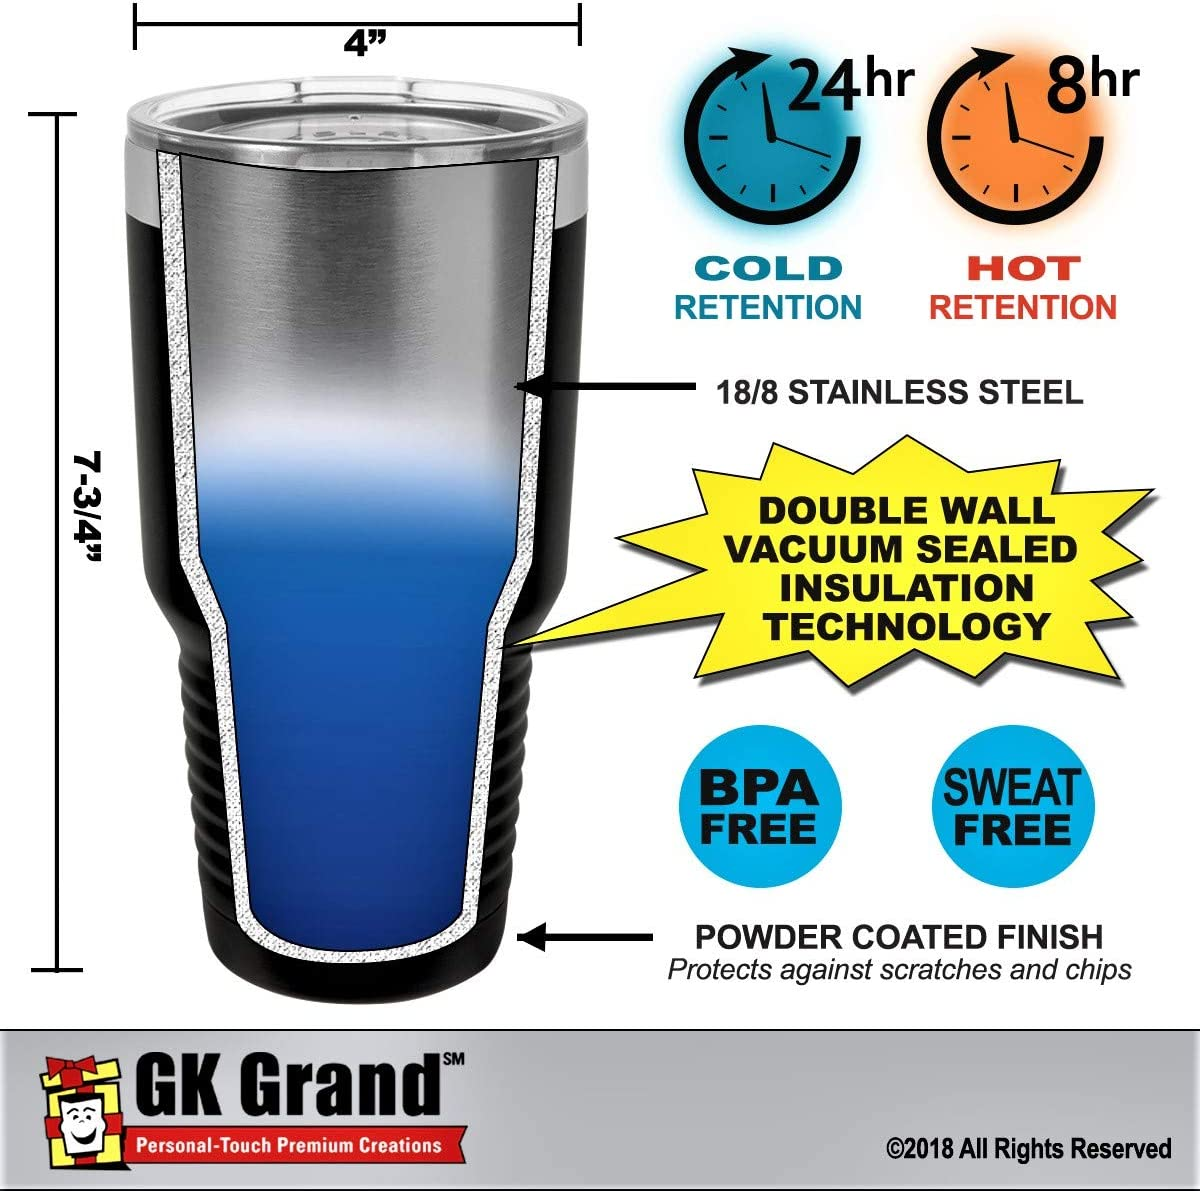 """Navy Blue, 30oz GIFT FOR DADDY /""""World/'s Greatest Daddy/"""" Engraved GK Grand Stainless Steel Tumbler Vacuum Insulated Large Travel Coffee Mug Hot /& Cold Drinks Christmas Birthday Fathers Day Dad Gift"""